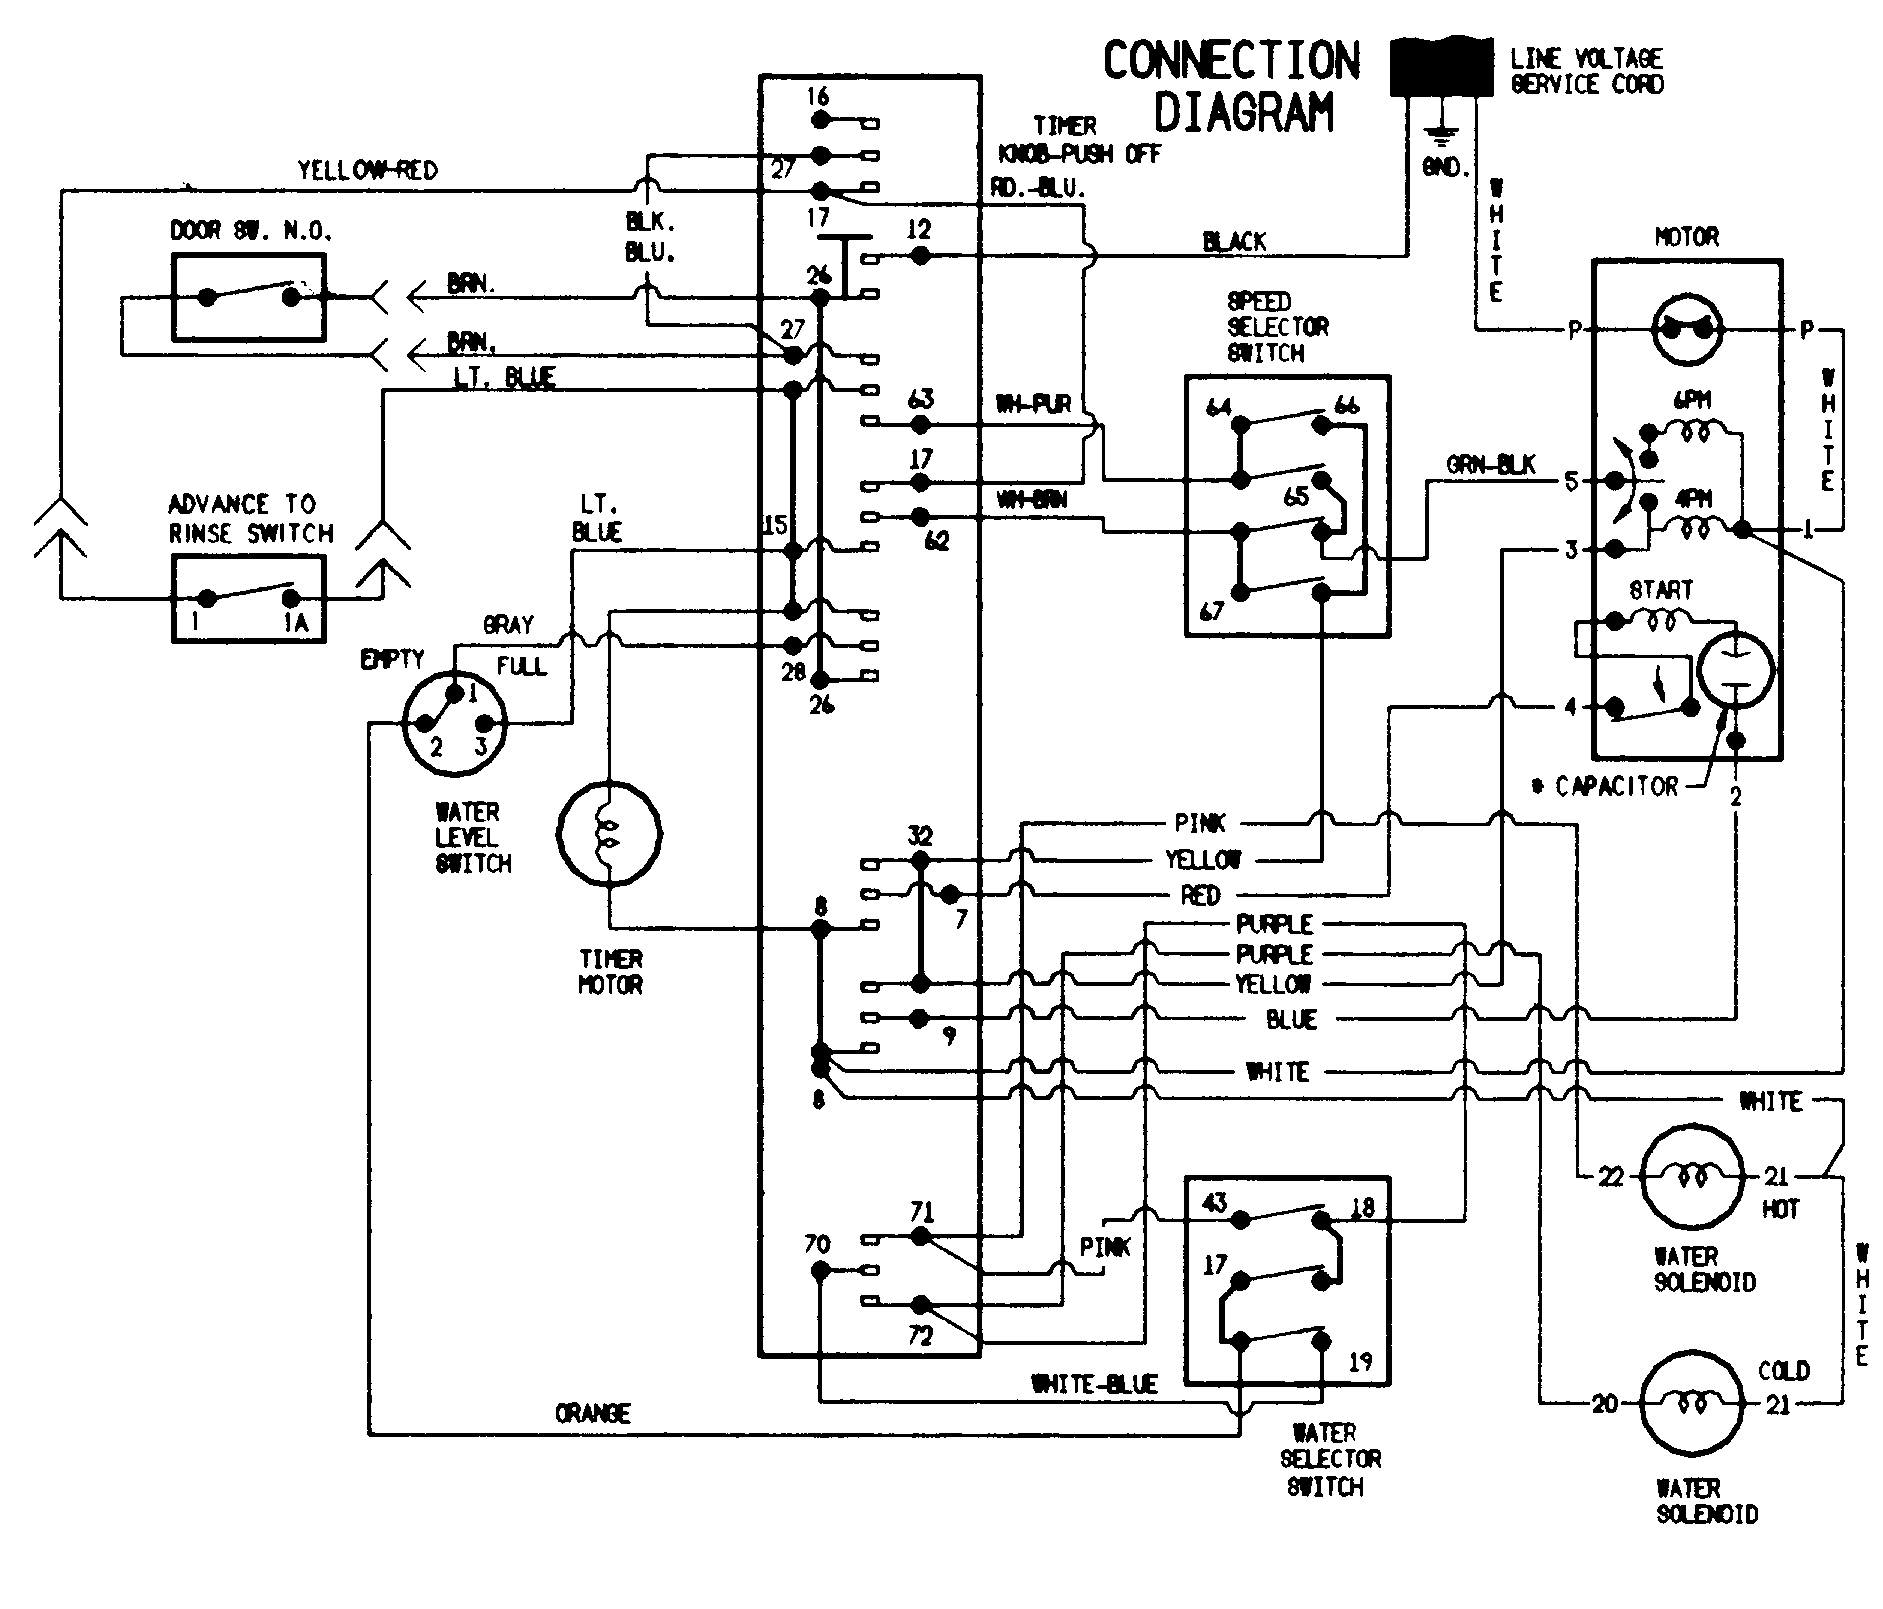 Kenmore 110 Series Dryer Wiring Diagram